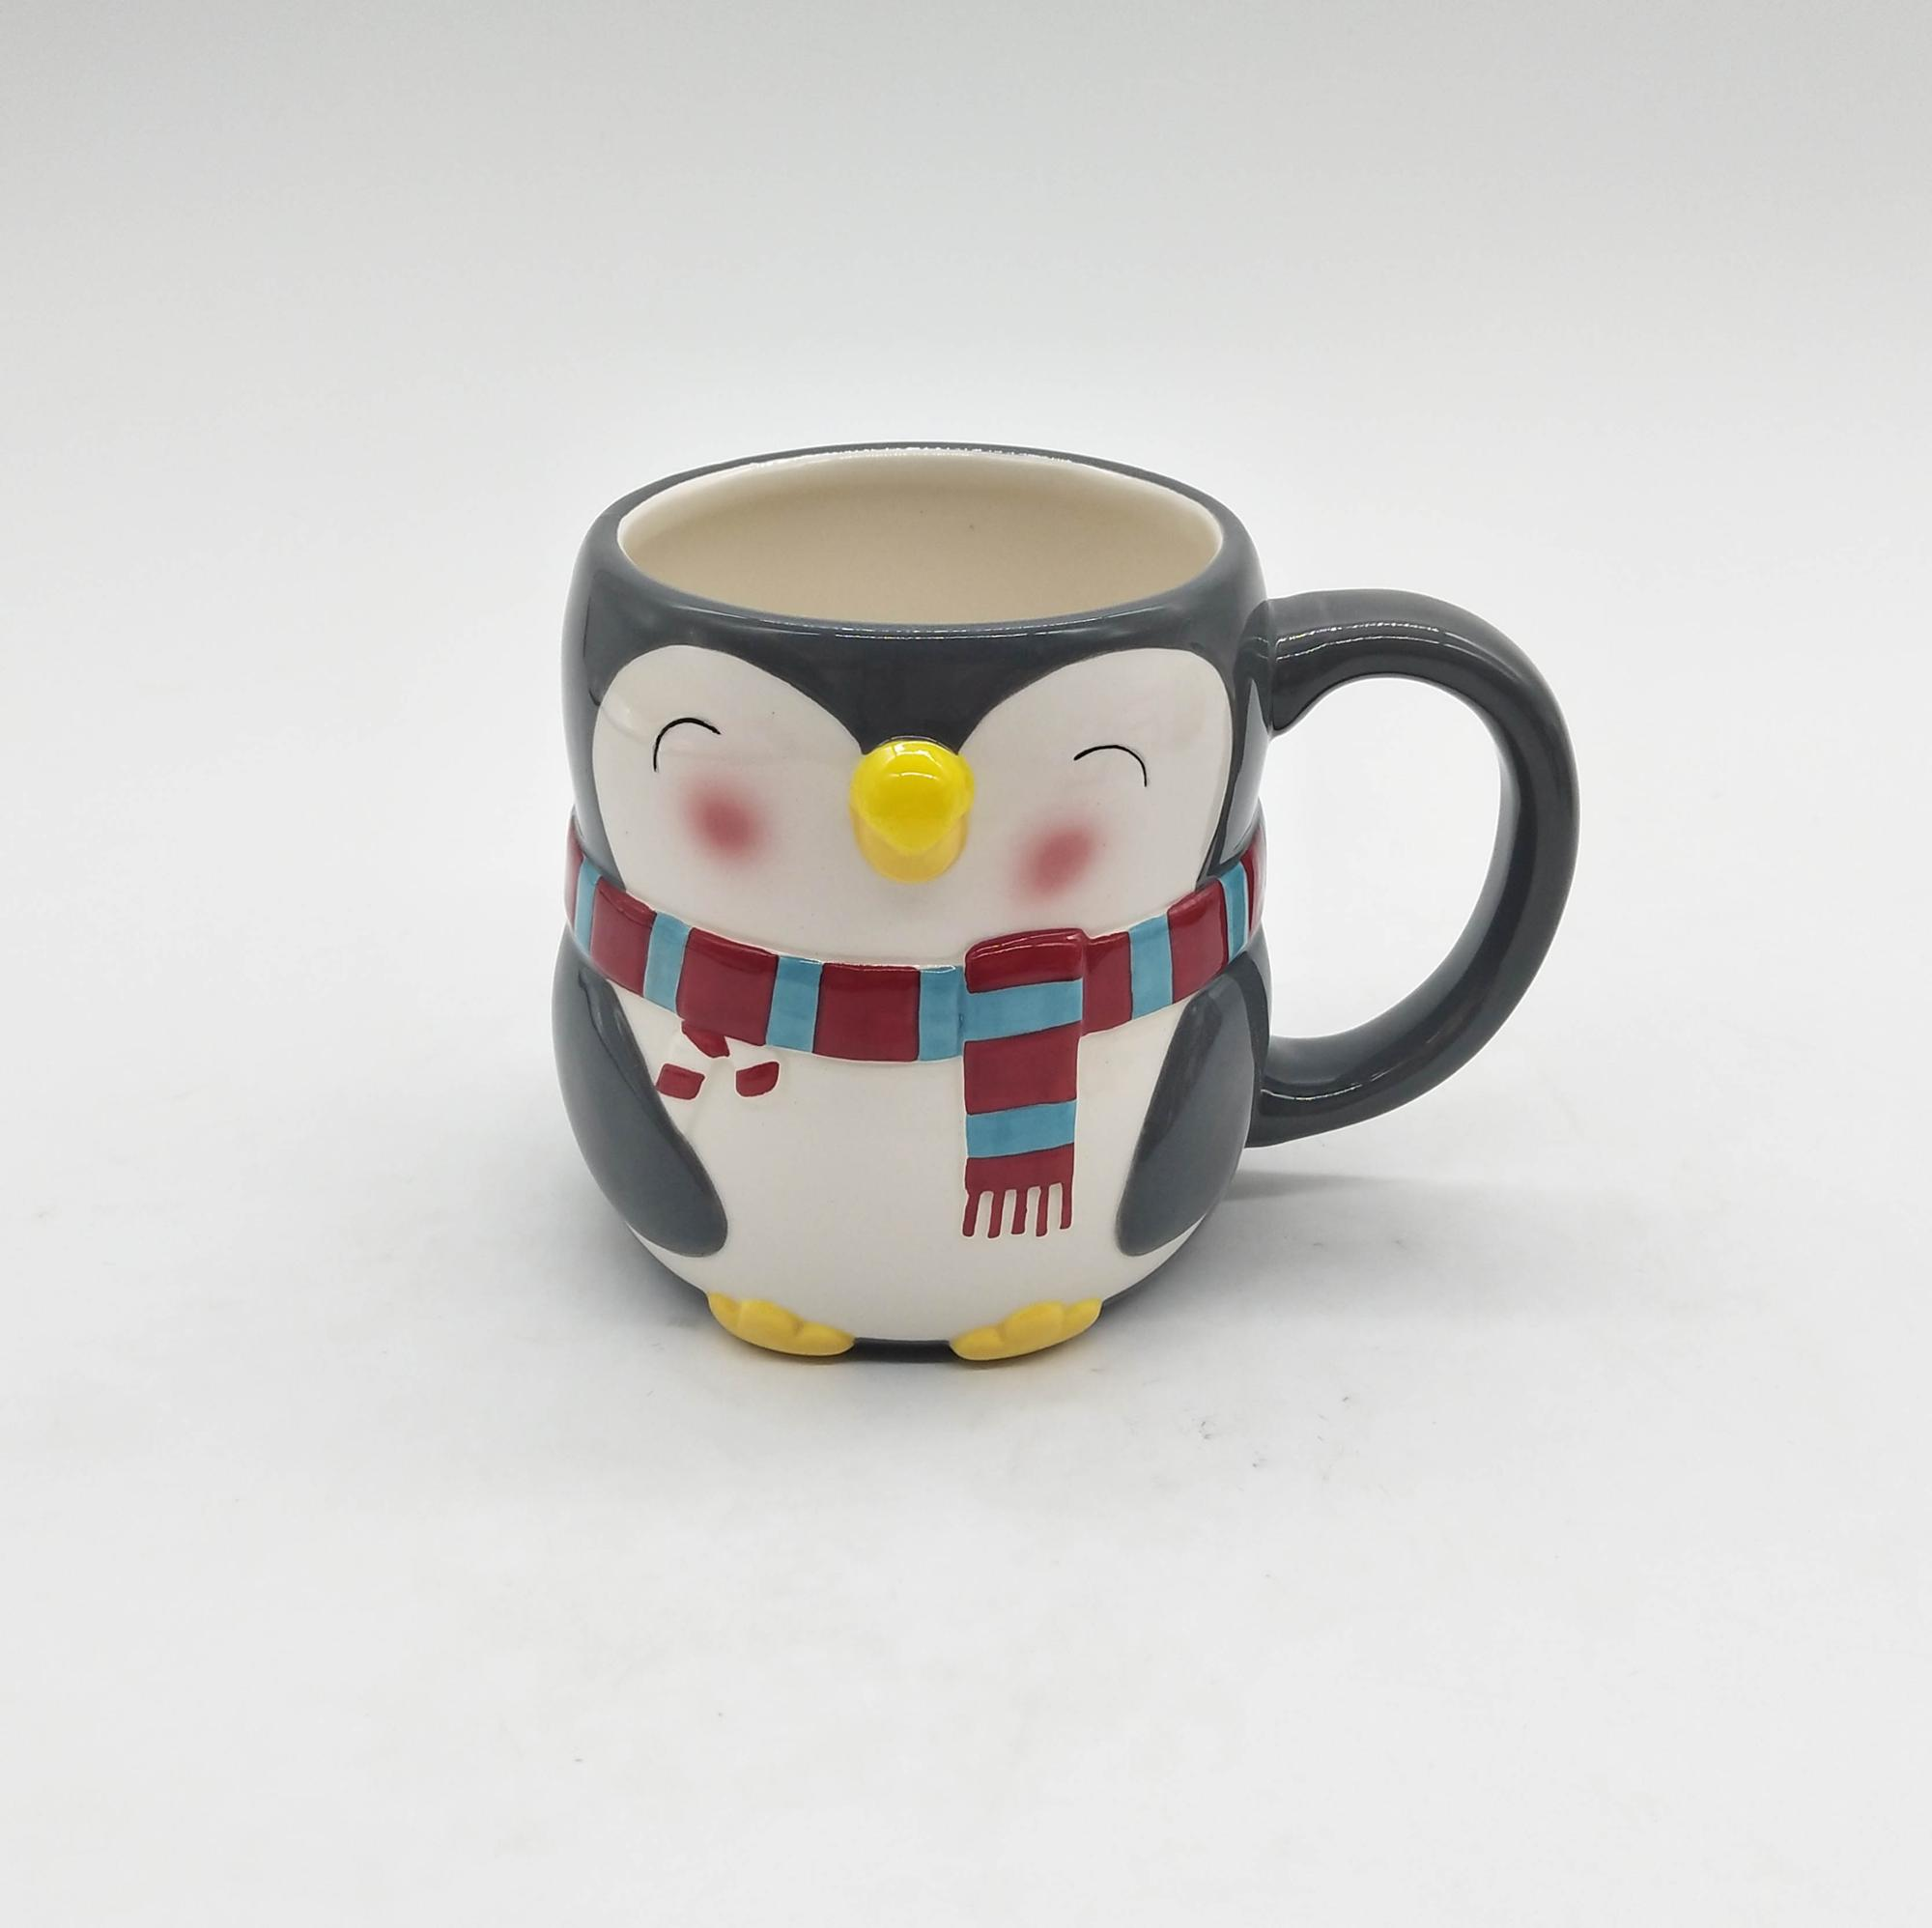 Buy Design Painted Christmas Custom cheap Ceramic Hand Coffee For Mugs Penguin Made Mugs rsxoQCdthB